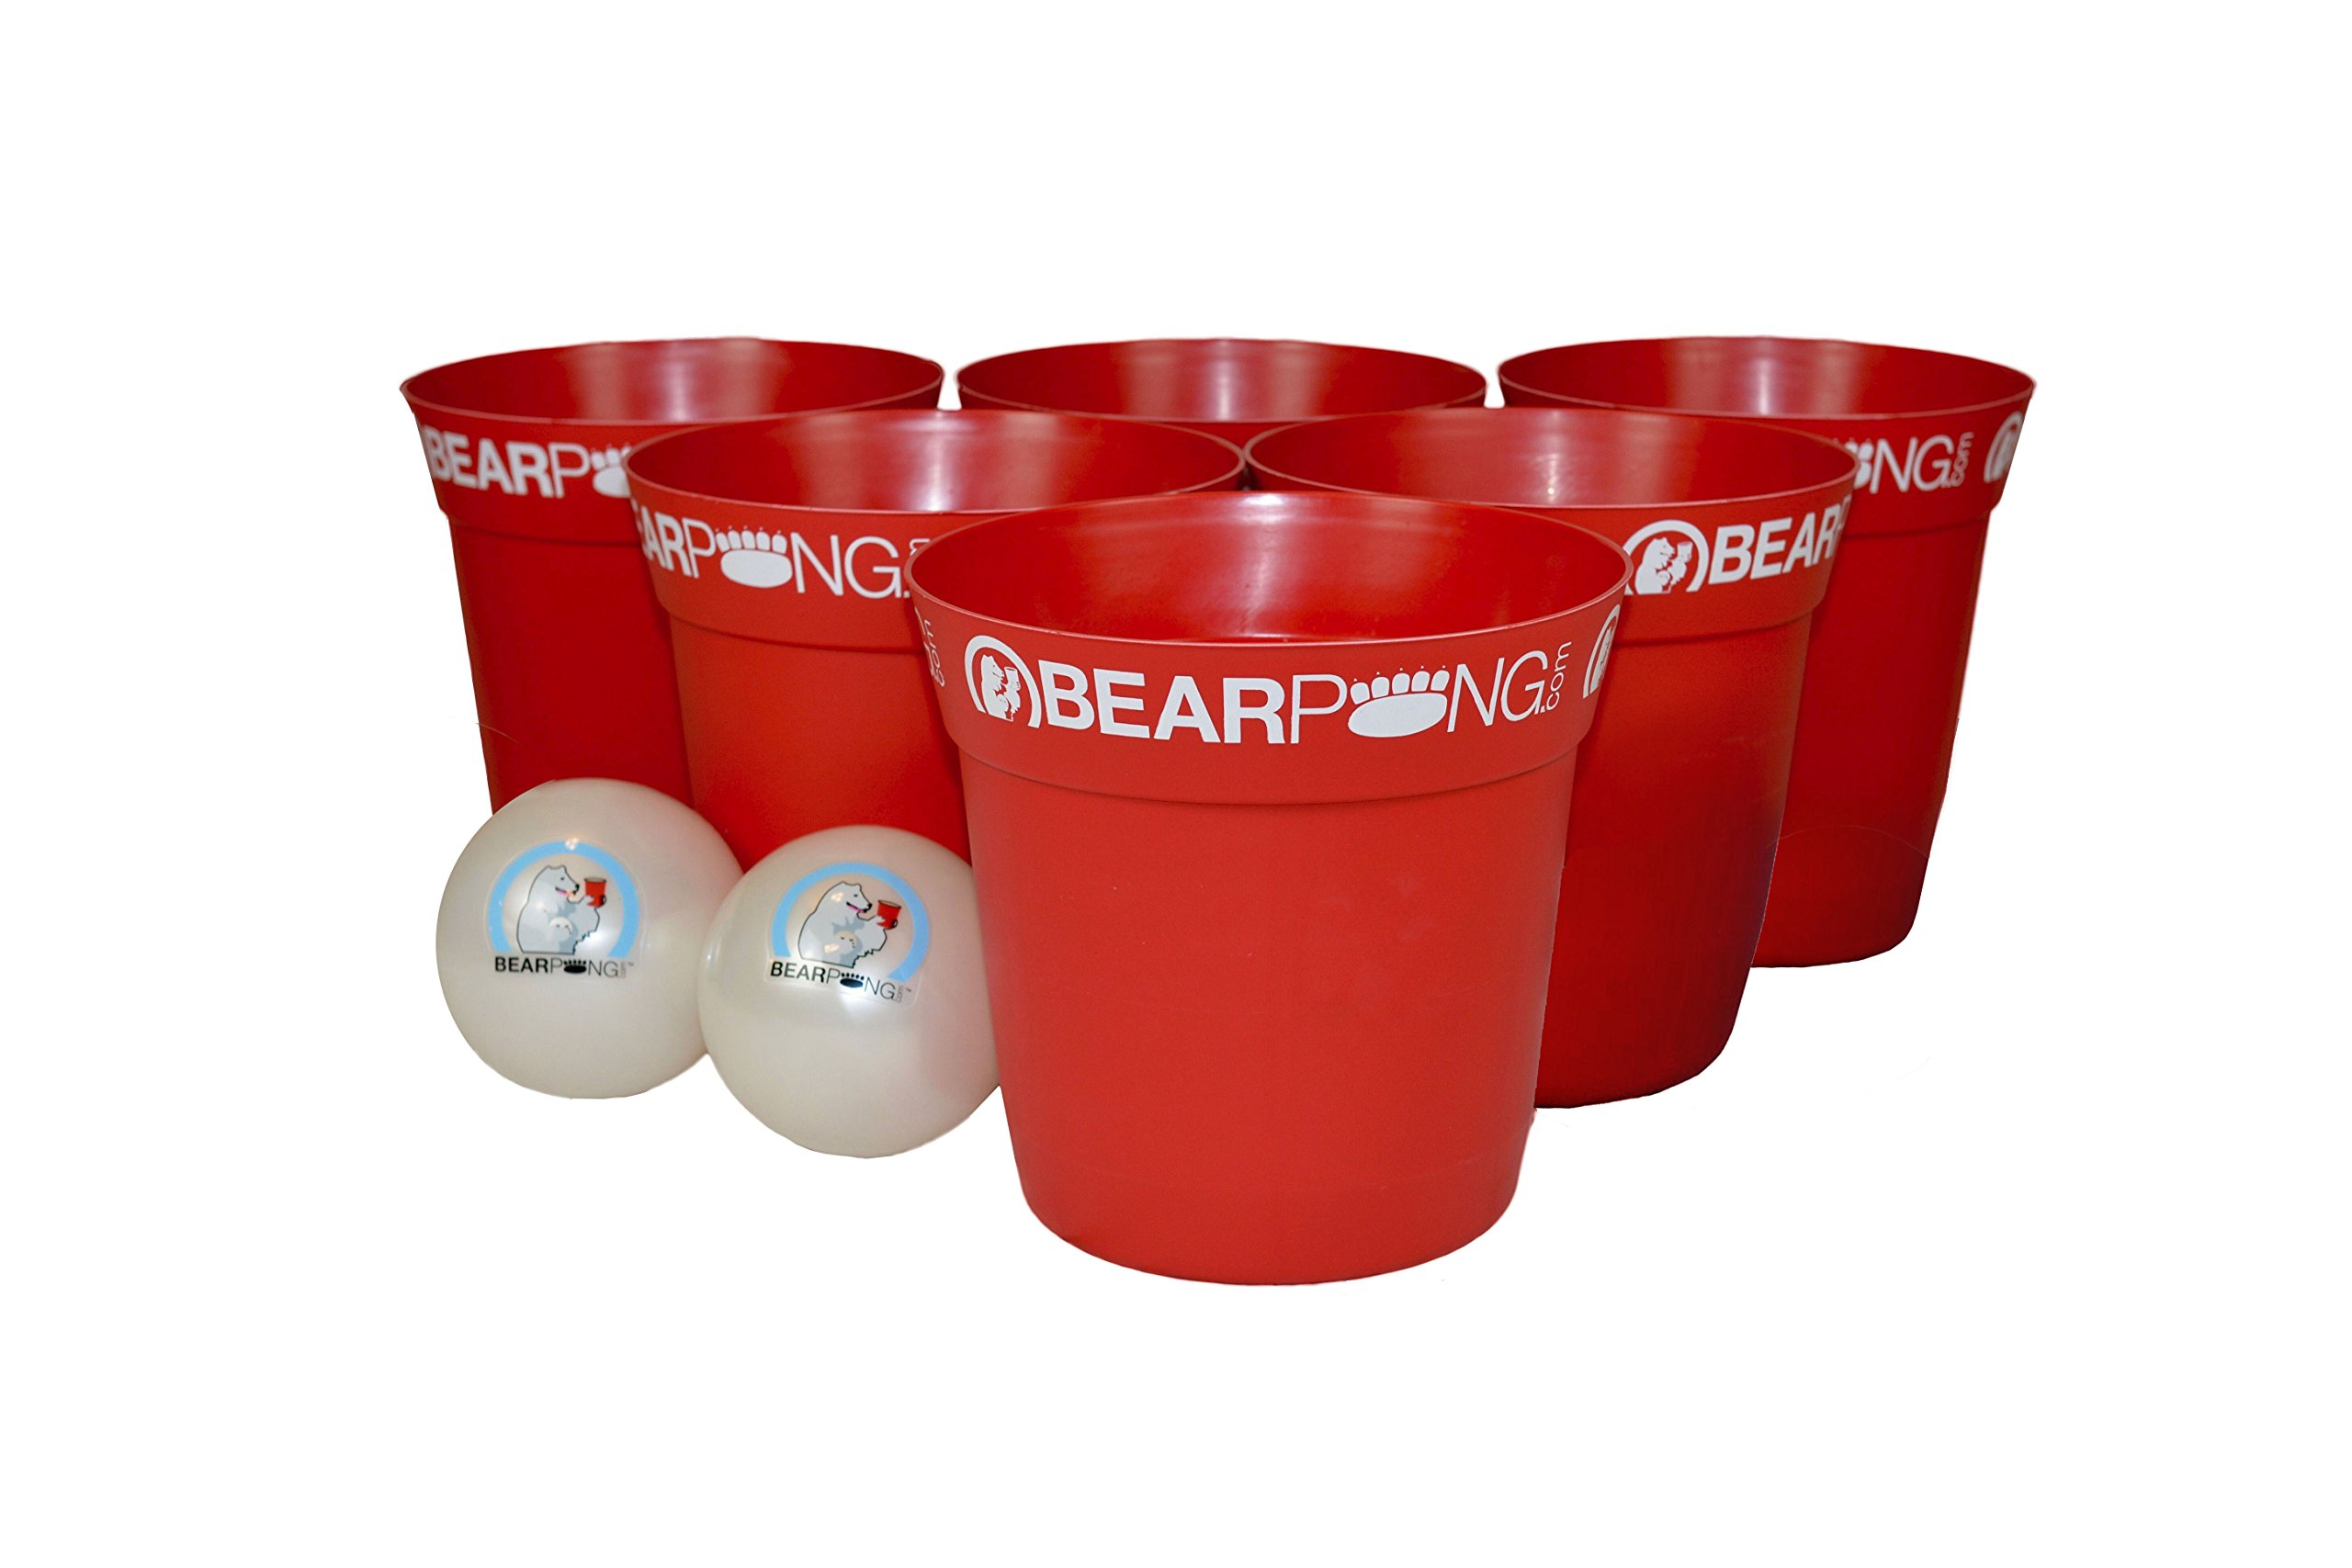 Bearpong Red Bearpong Game Set: 12 BEARPONG Red Buckets, 2 BEARPONG Balls with Carrying Case, and instructions